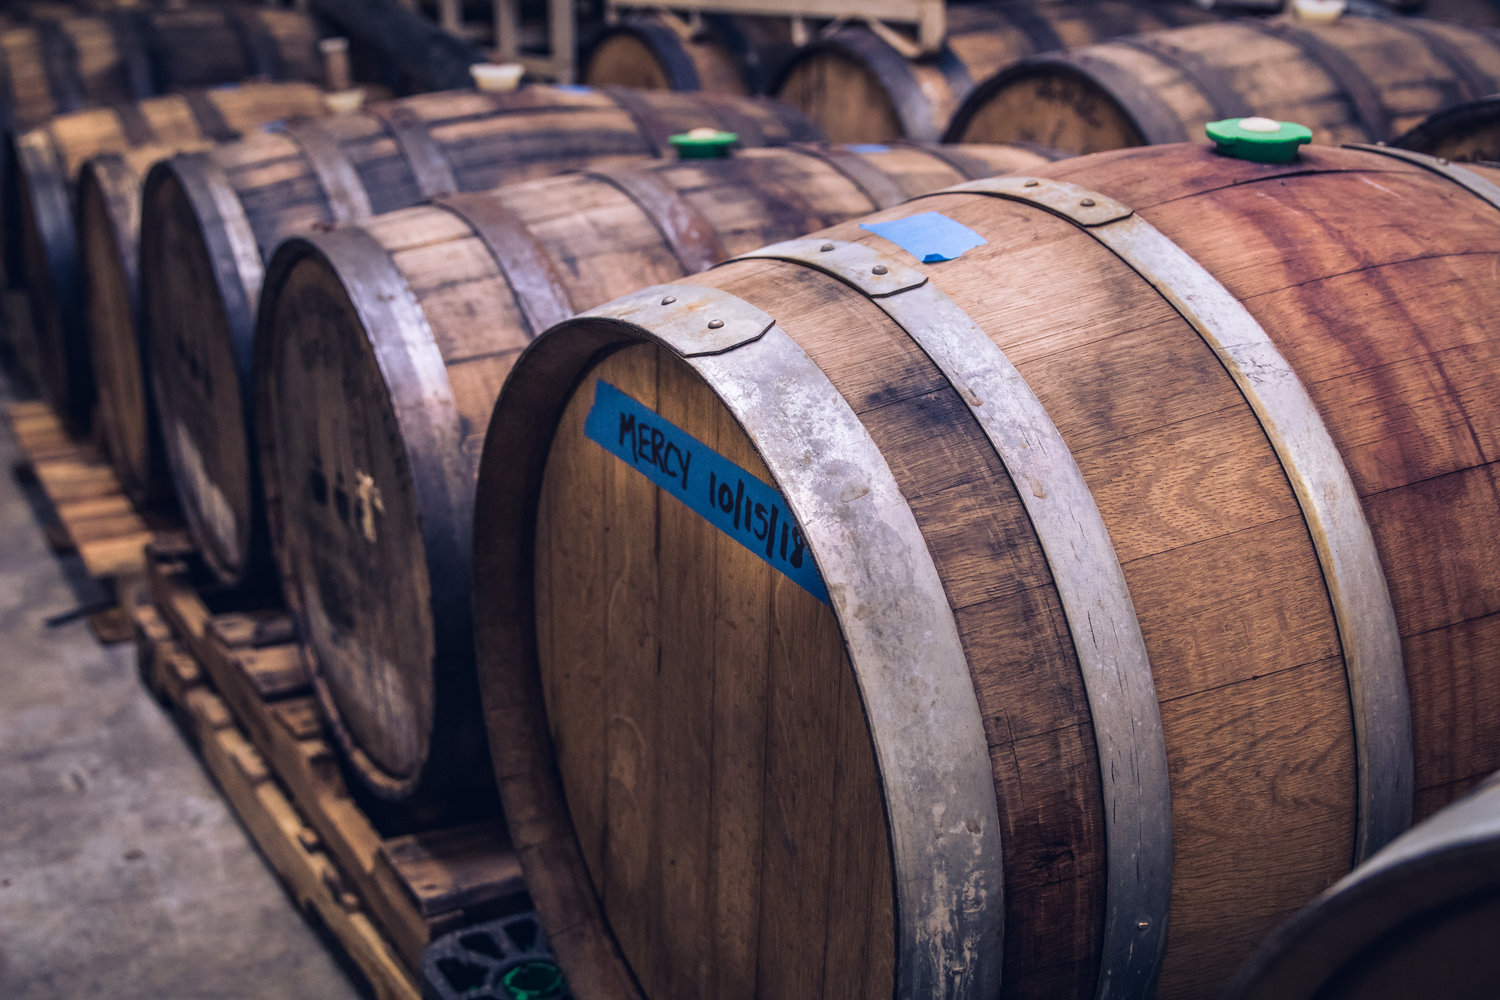 Stacks of wooden 